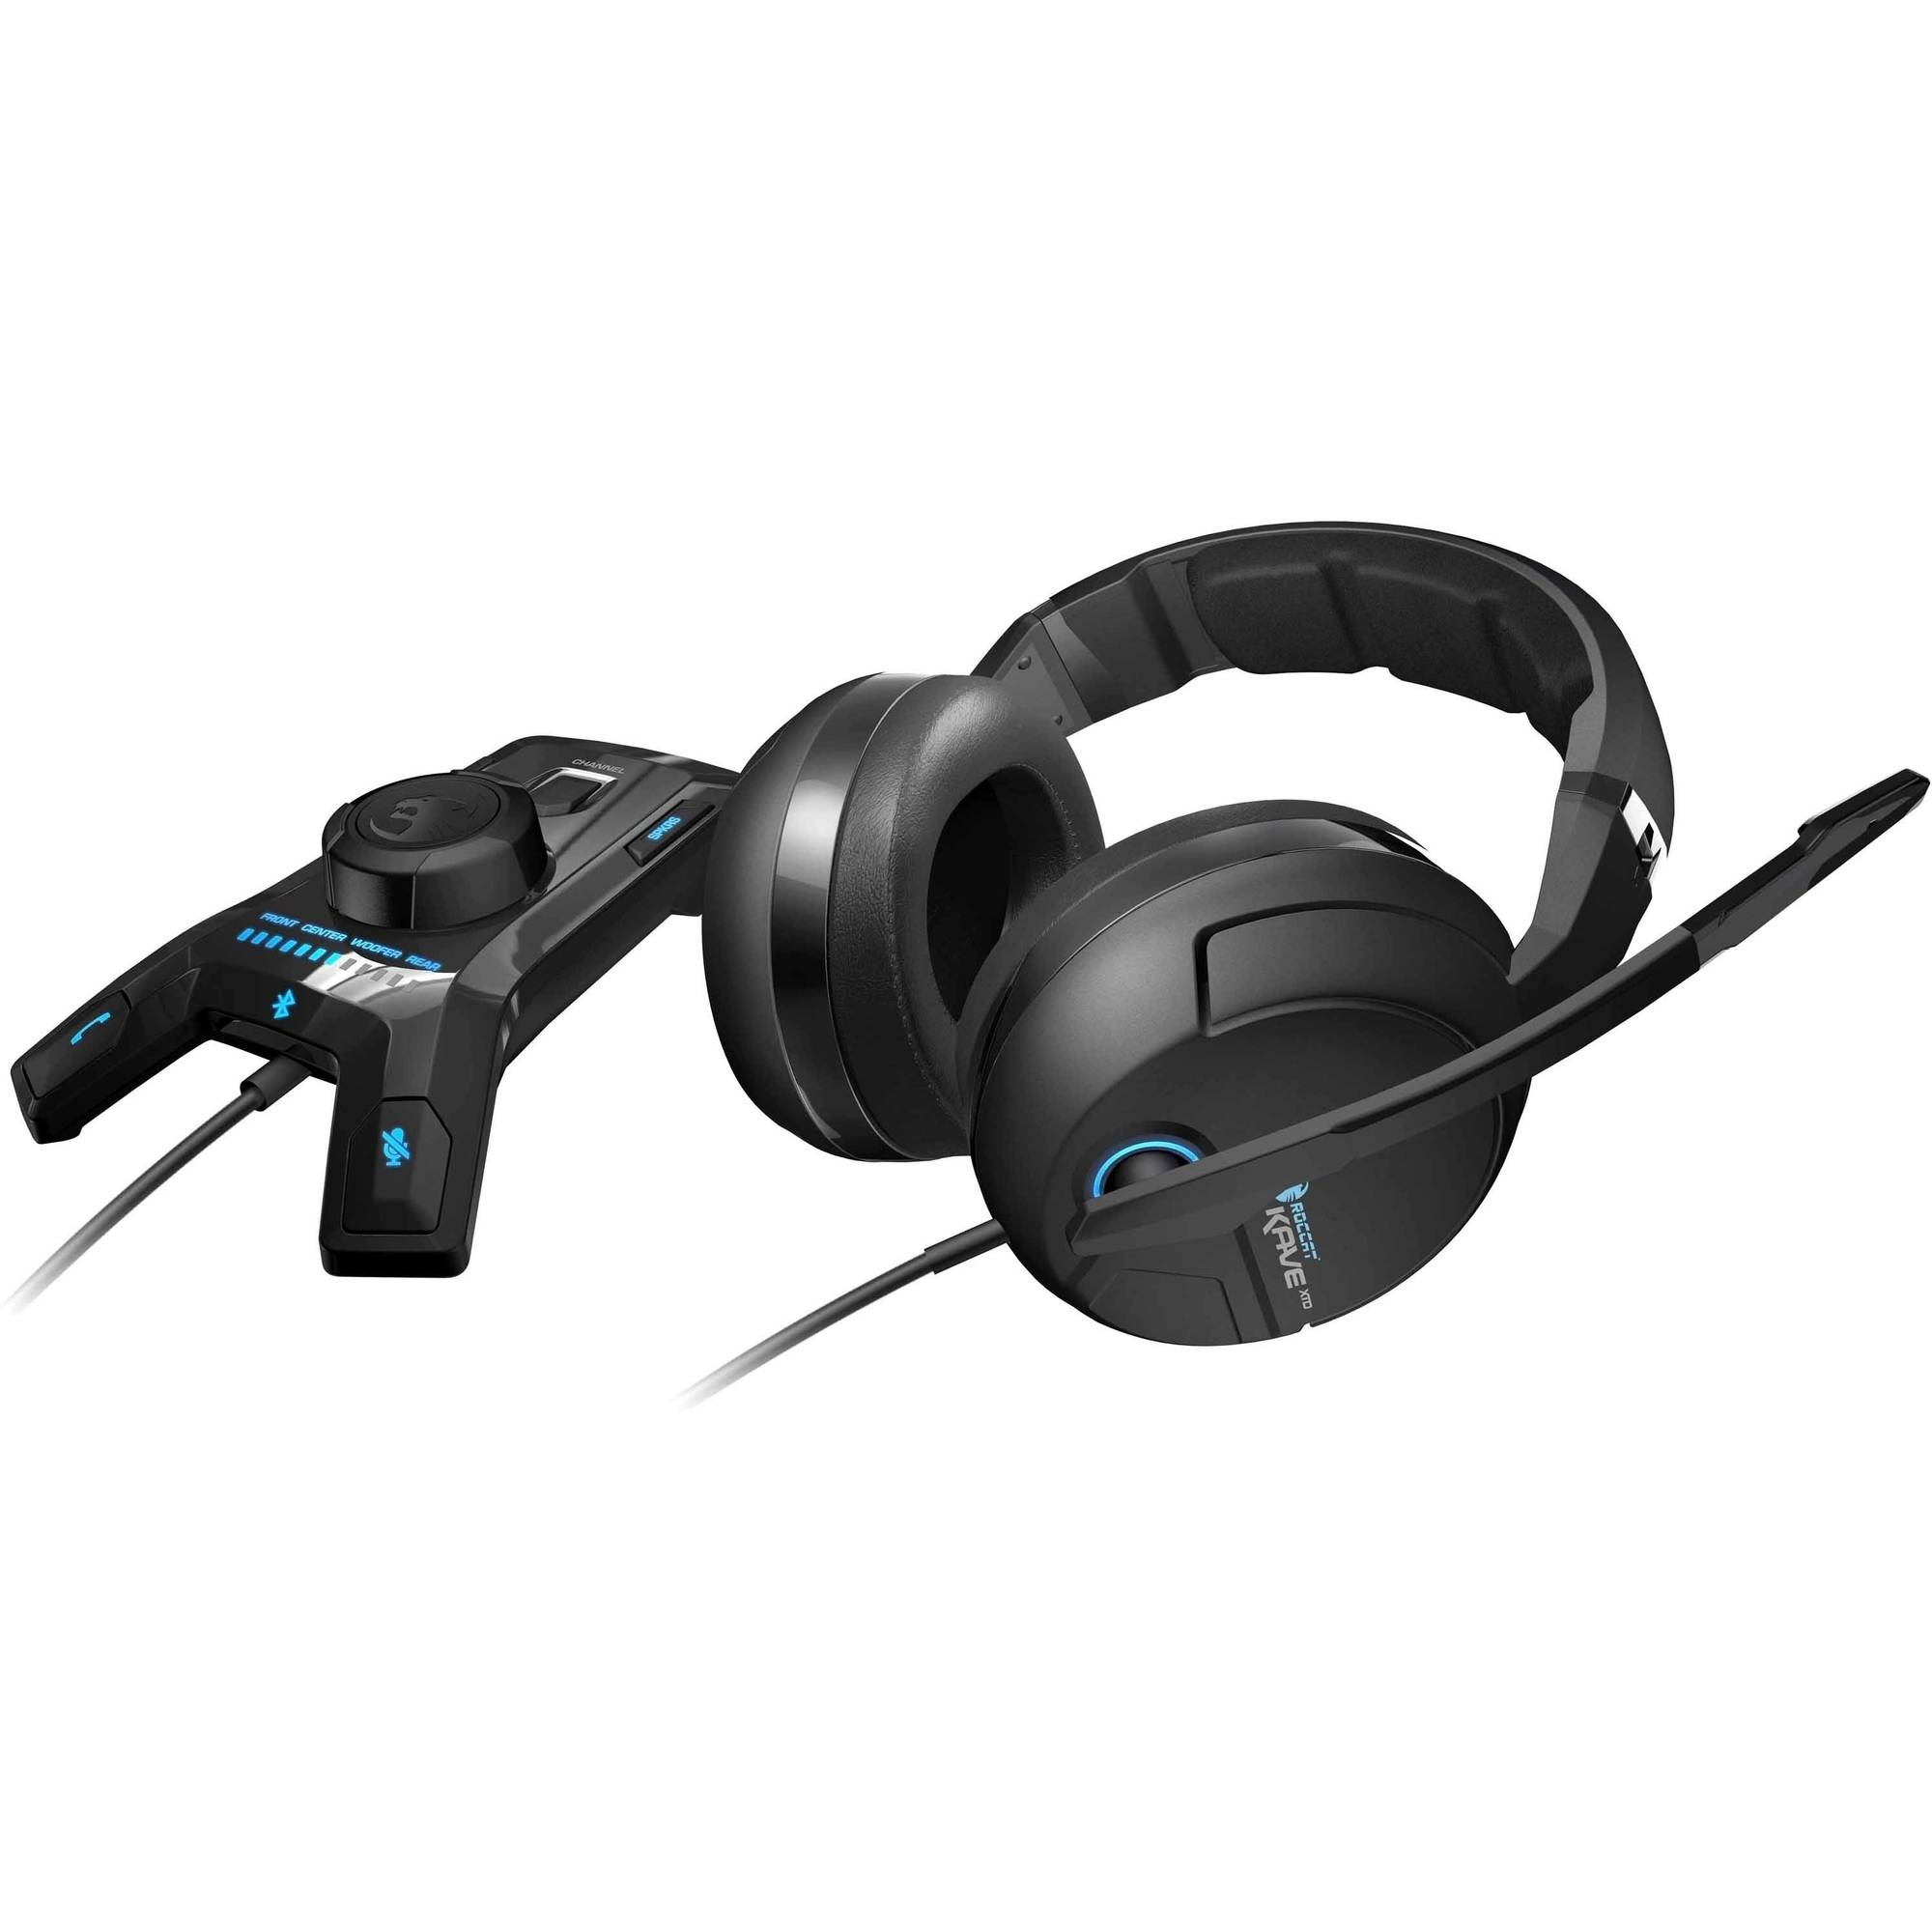 ROCCAT Kave XTD Digital Premium 5.1 Surround Headset with USB Remote and Sound Card